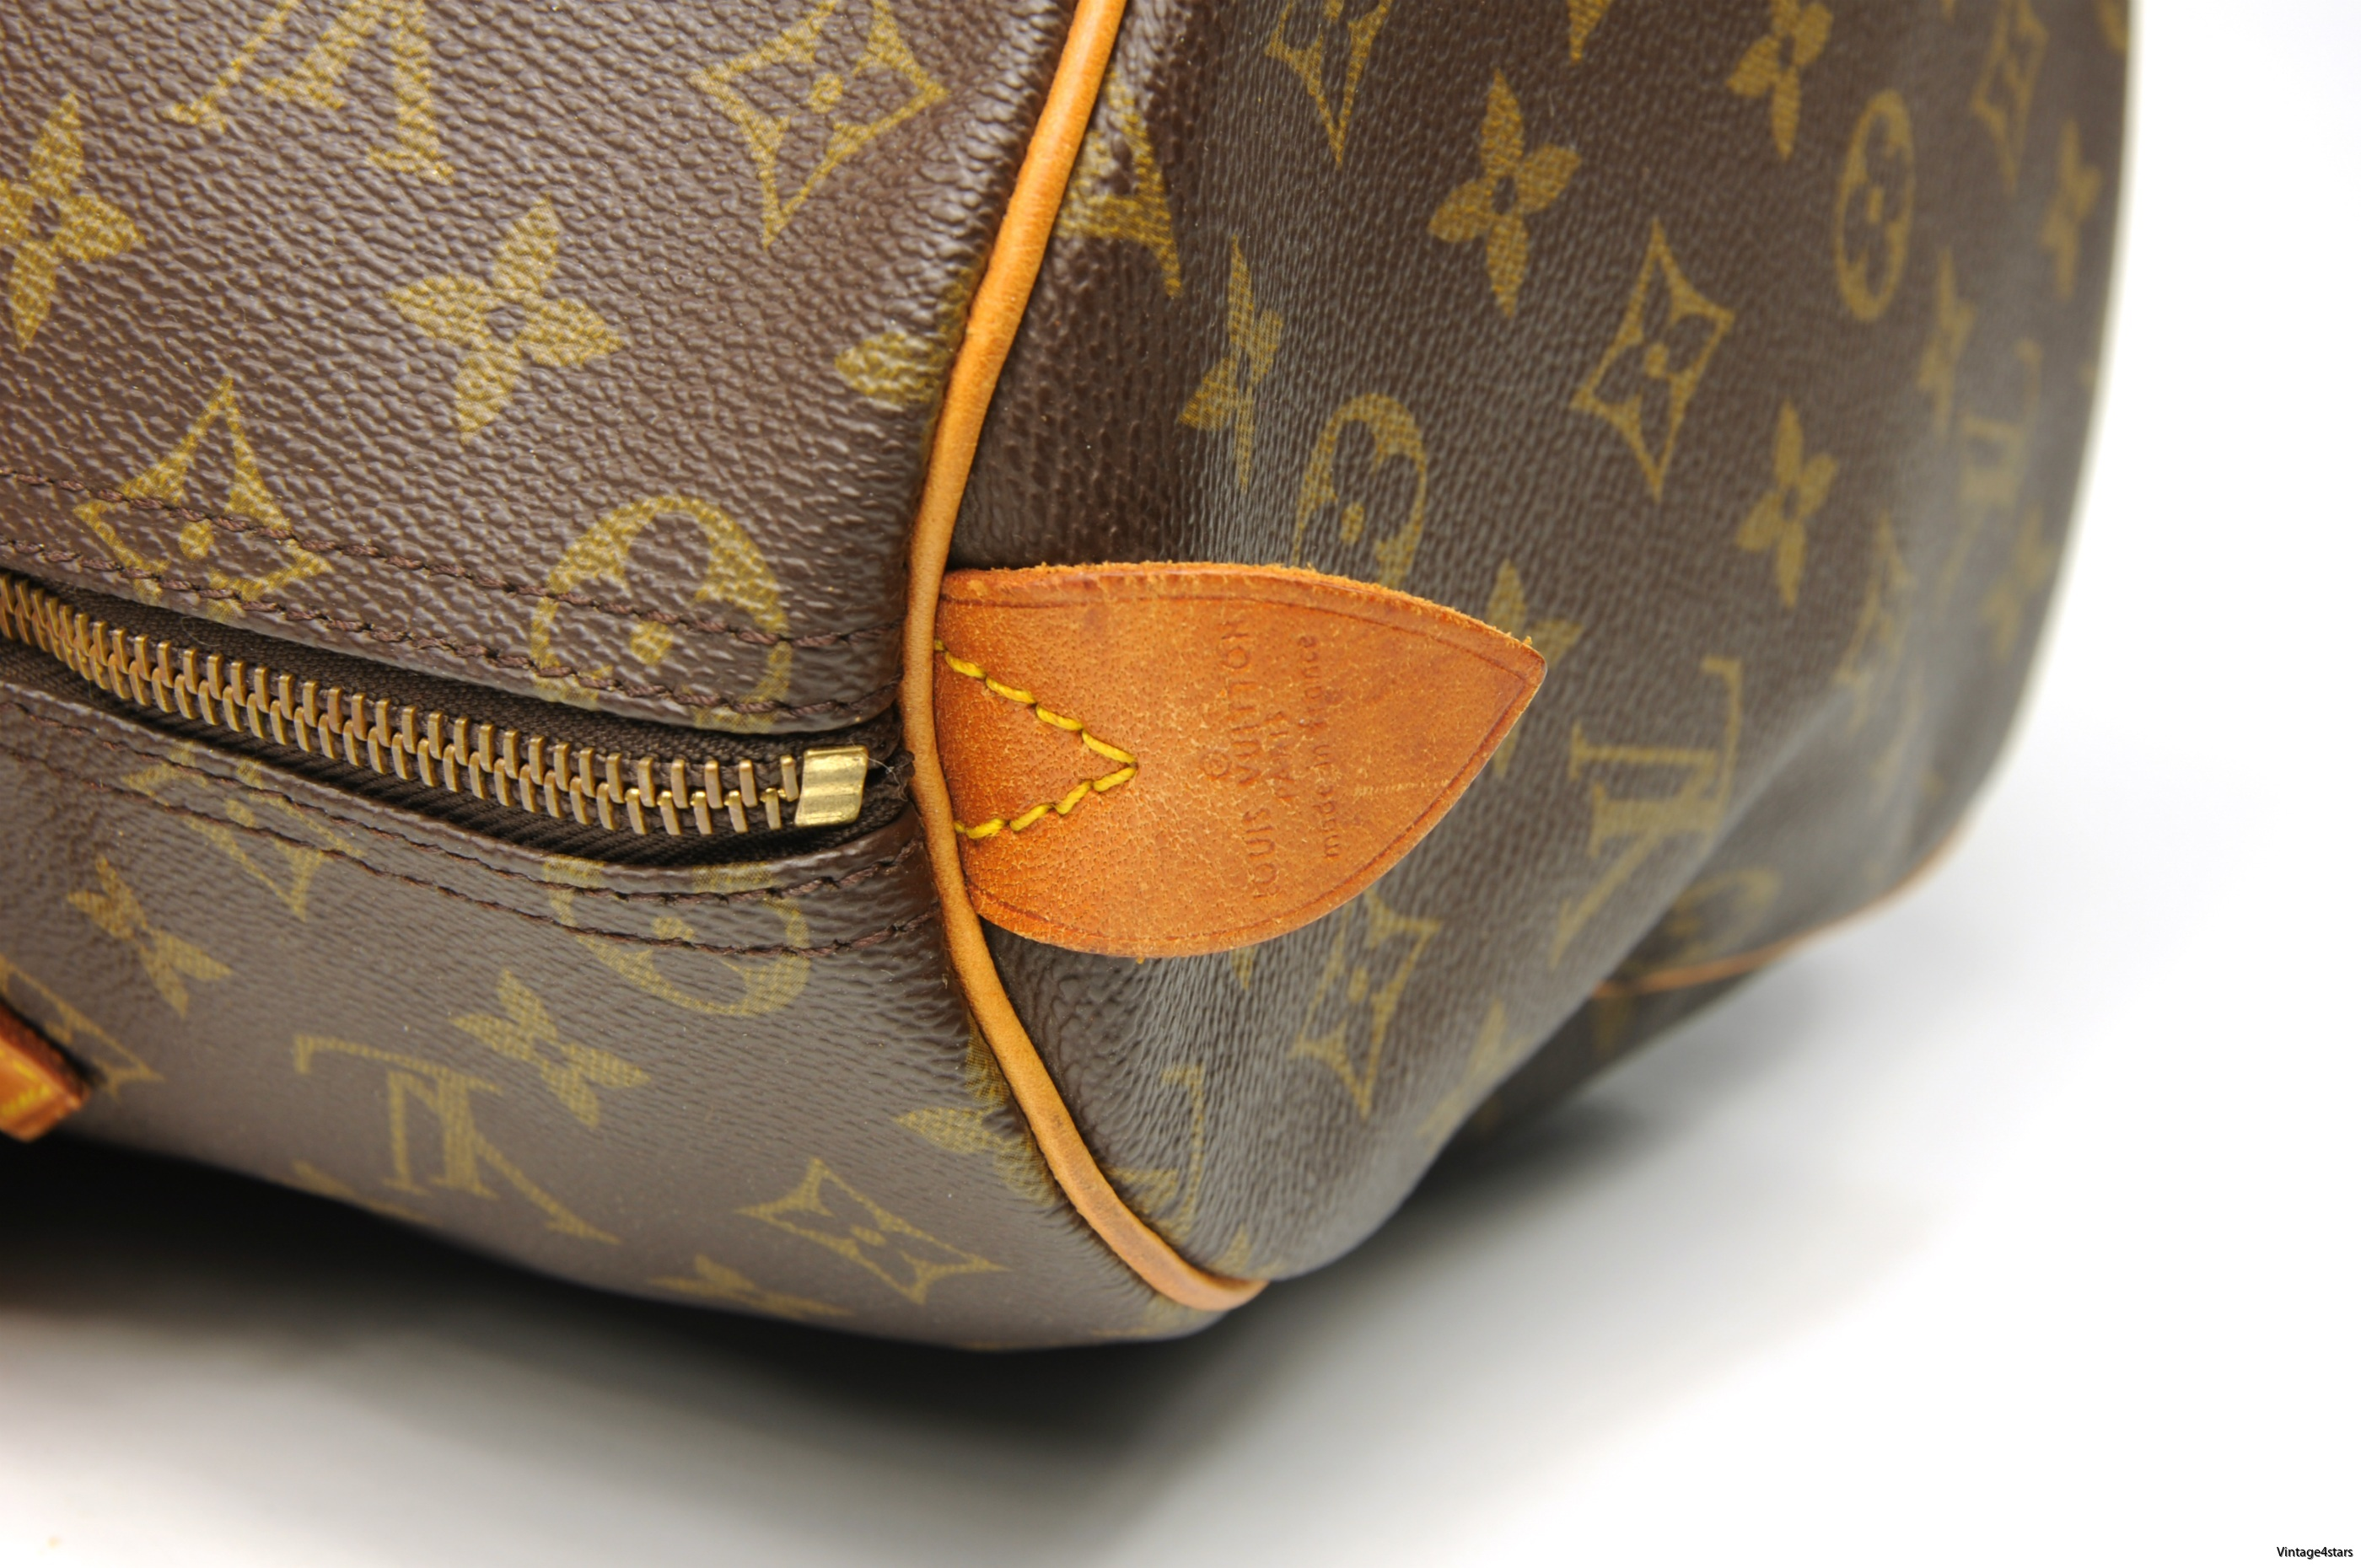 Louis Vuitton Speedy 35 Monogram 7